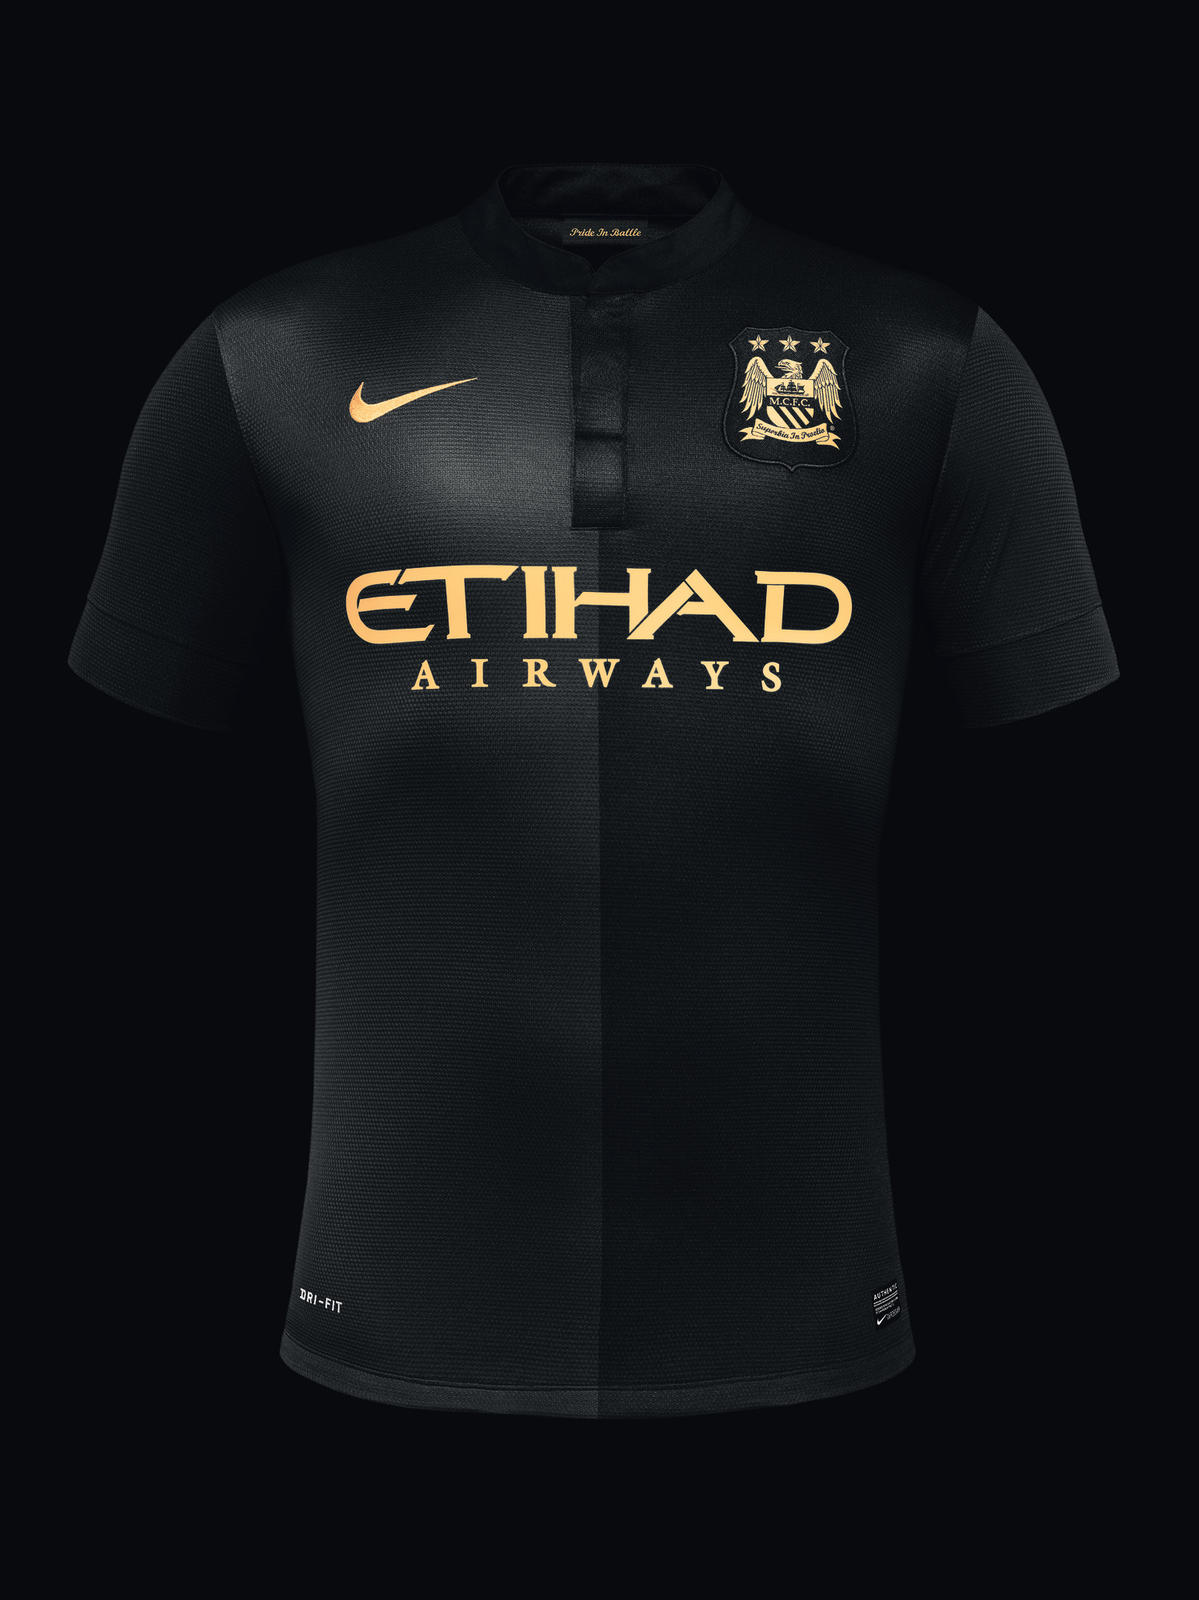 Nike And Manchester City Reveal Away Kit For Upcoming